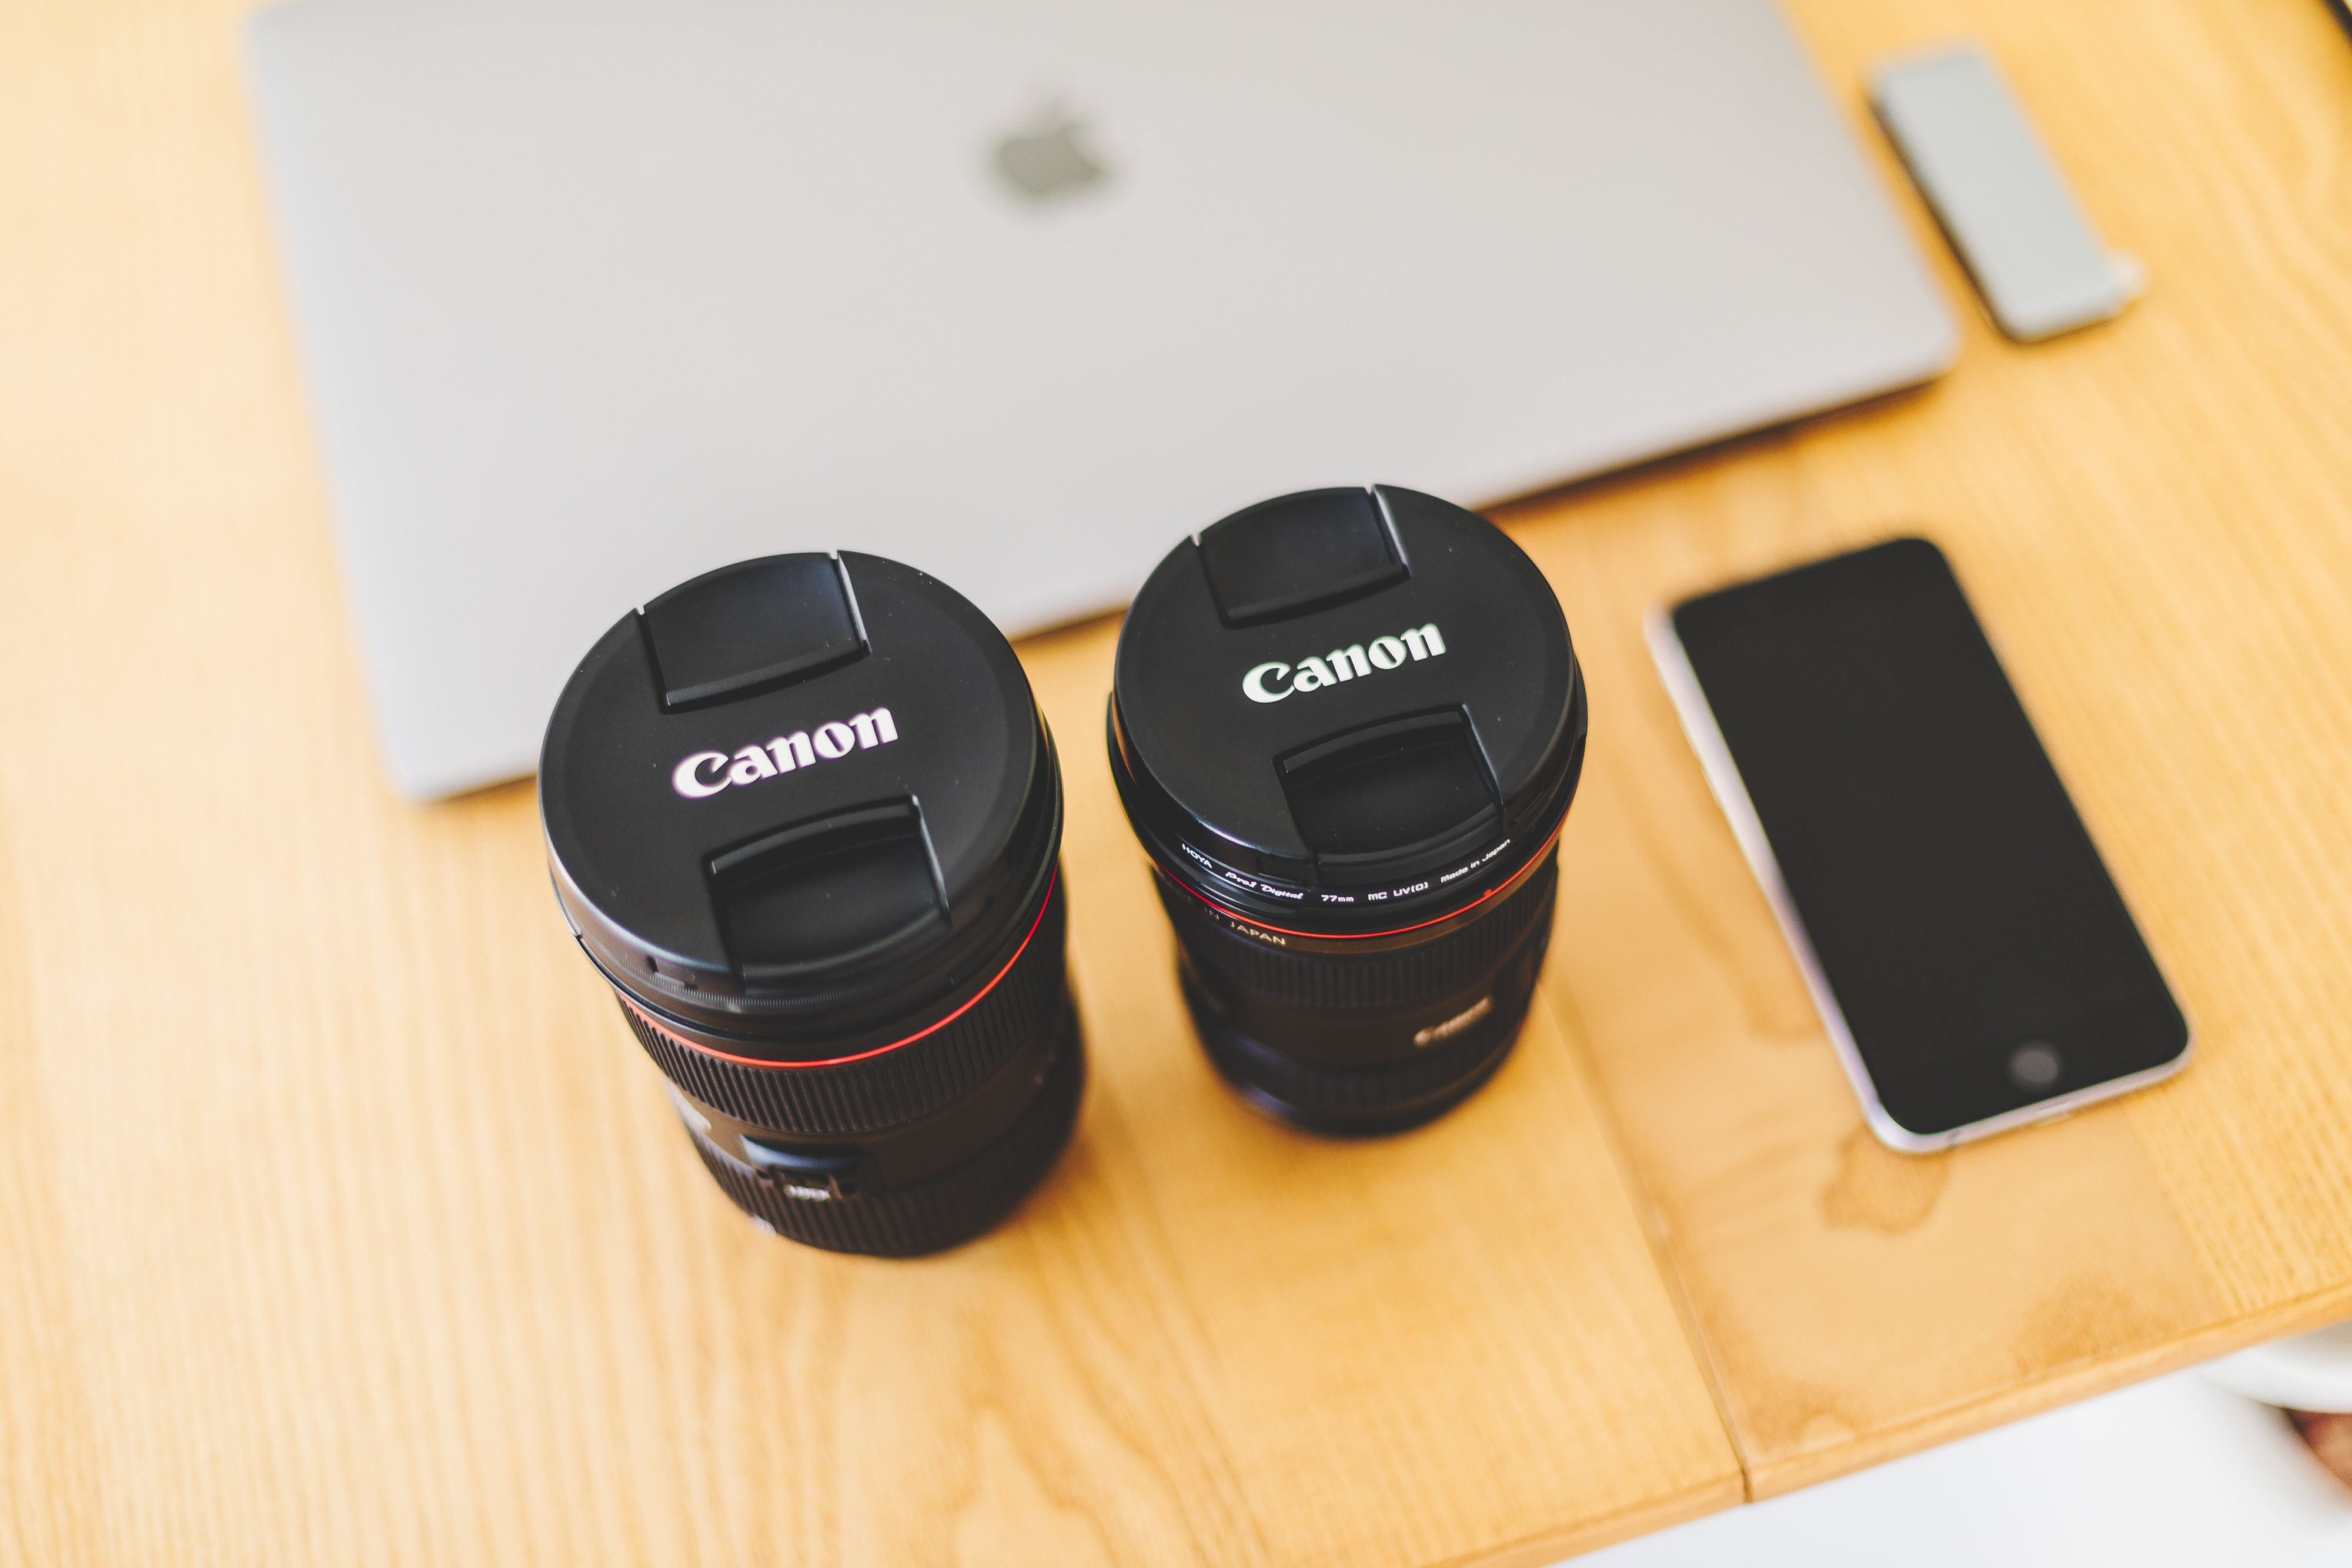 two black Canon camera lens near space gray iPhone 6